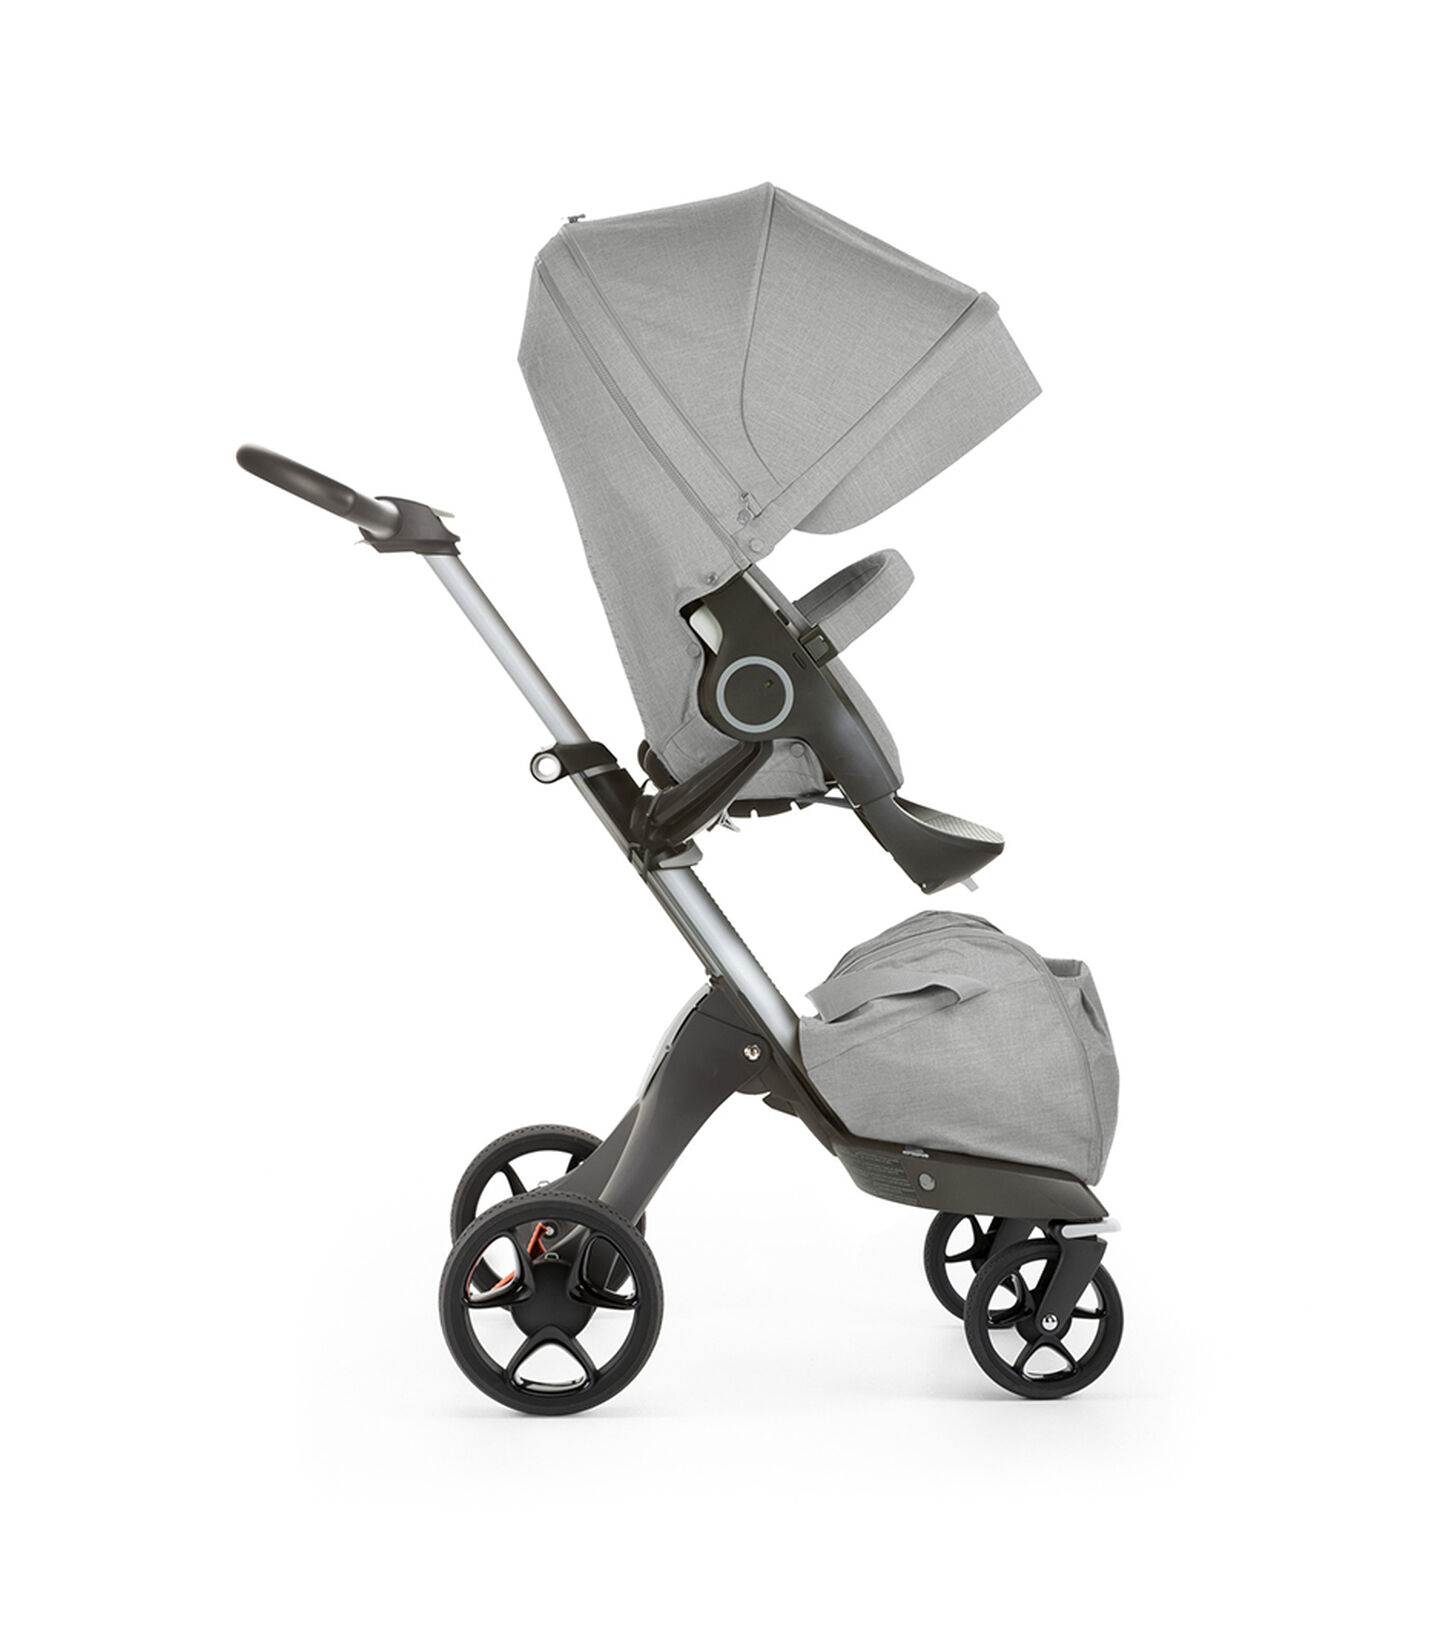 Stokke® Xplory® with Stokke® Stroller Seat, forward facing, active position. Grey Melange. New wheels 2016.